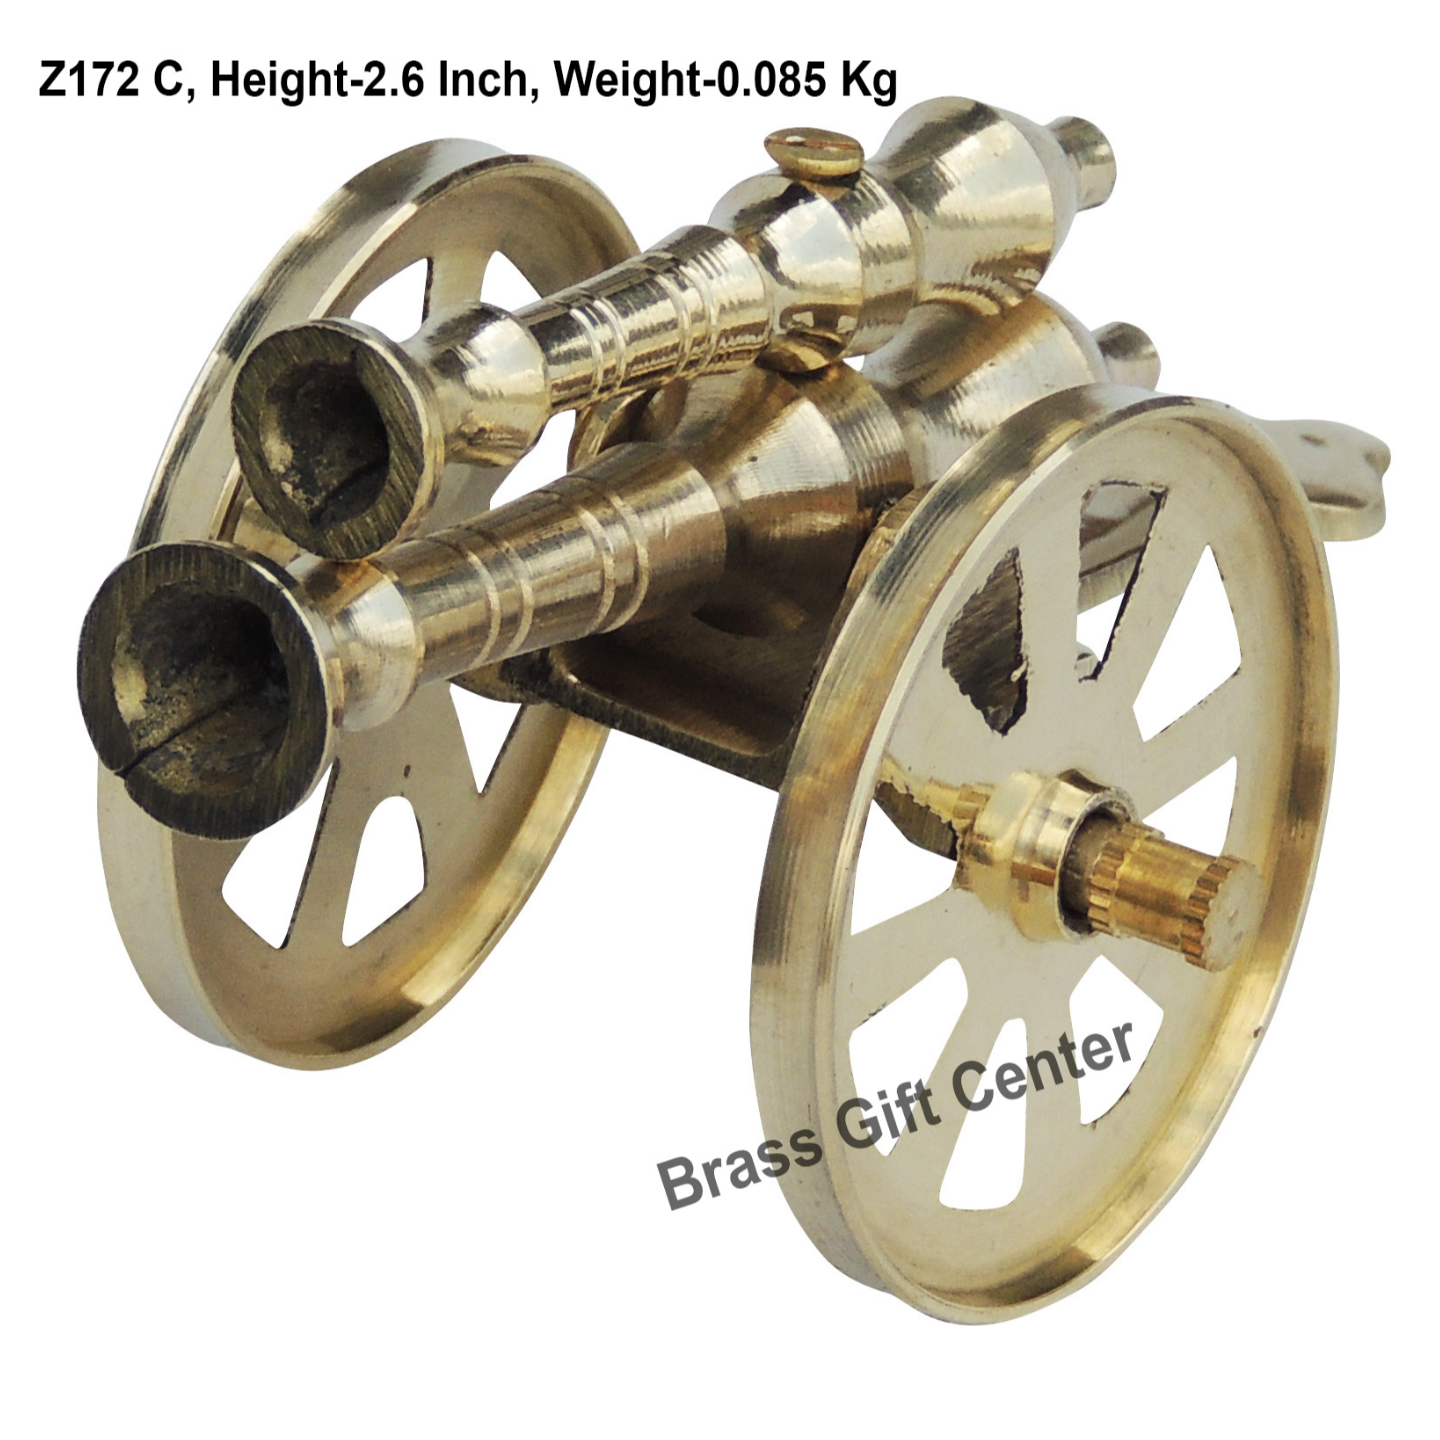 Brass Small Toop Cannon No. 5 - 4.4*2.2*2.6 Inch  (Z172 C)